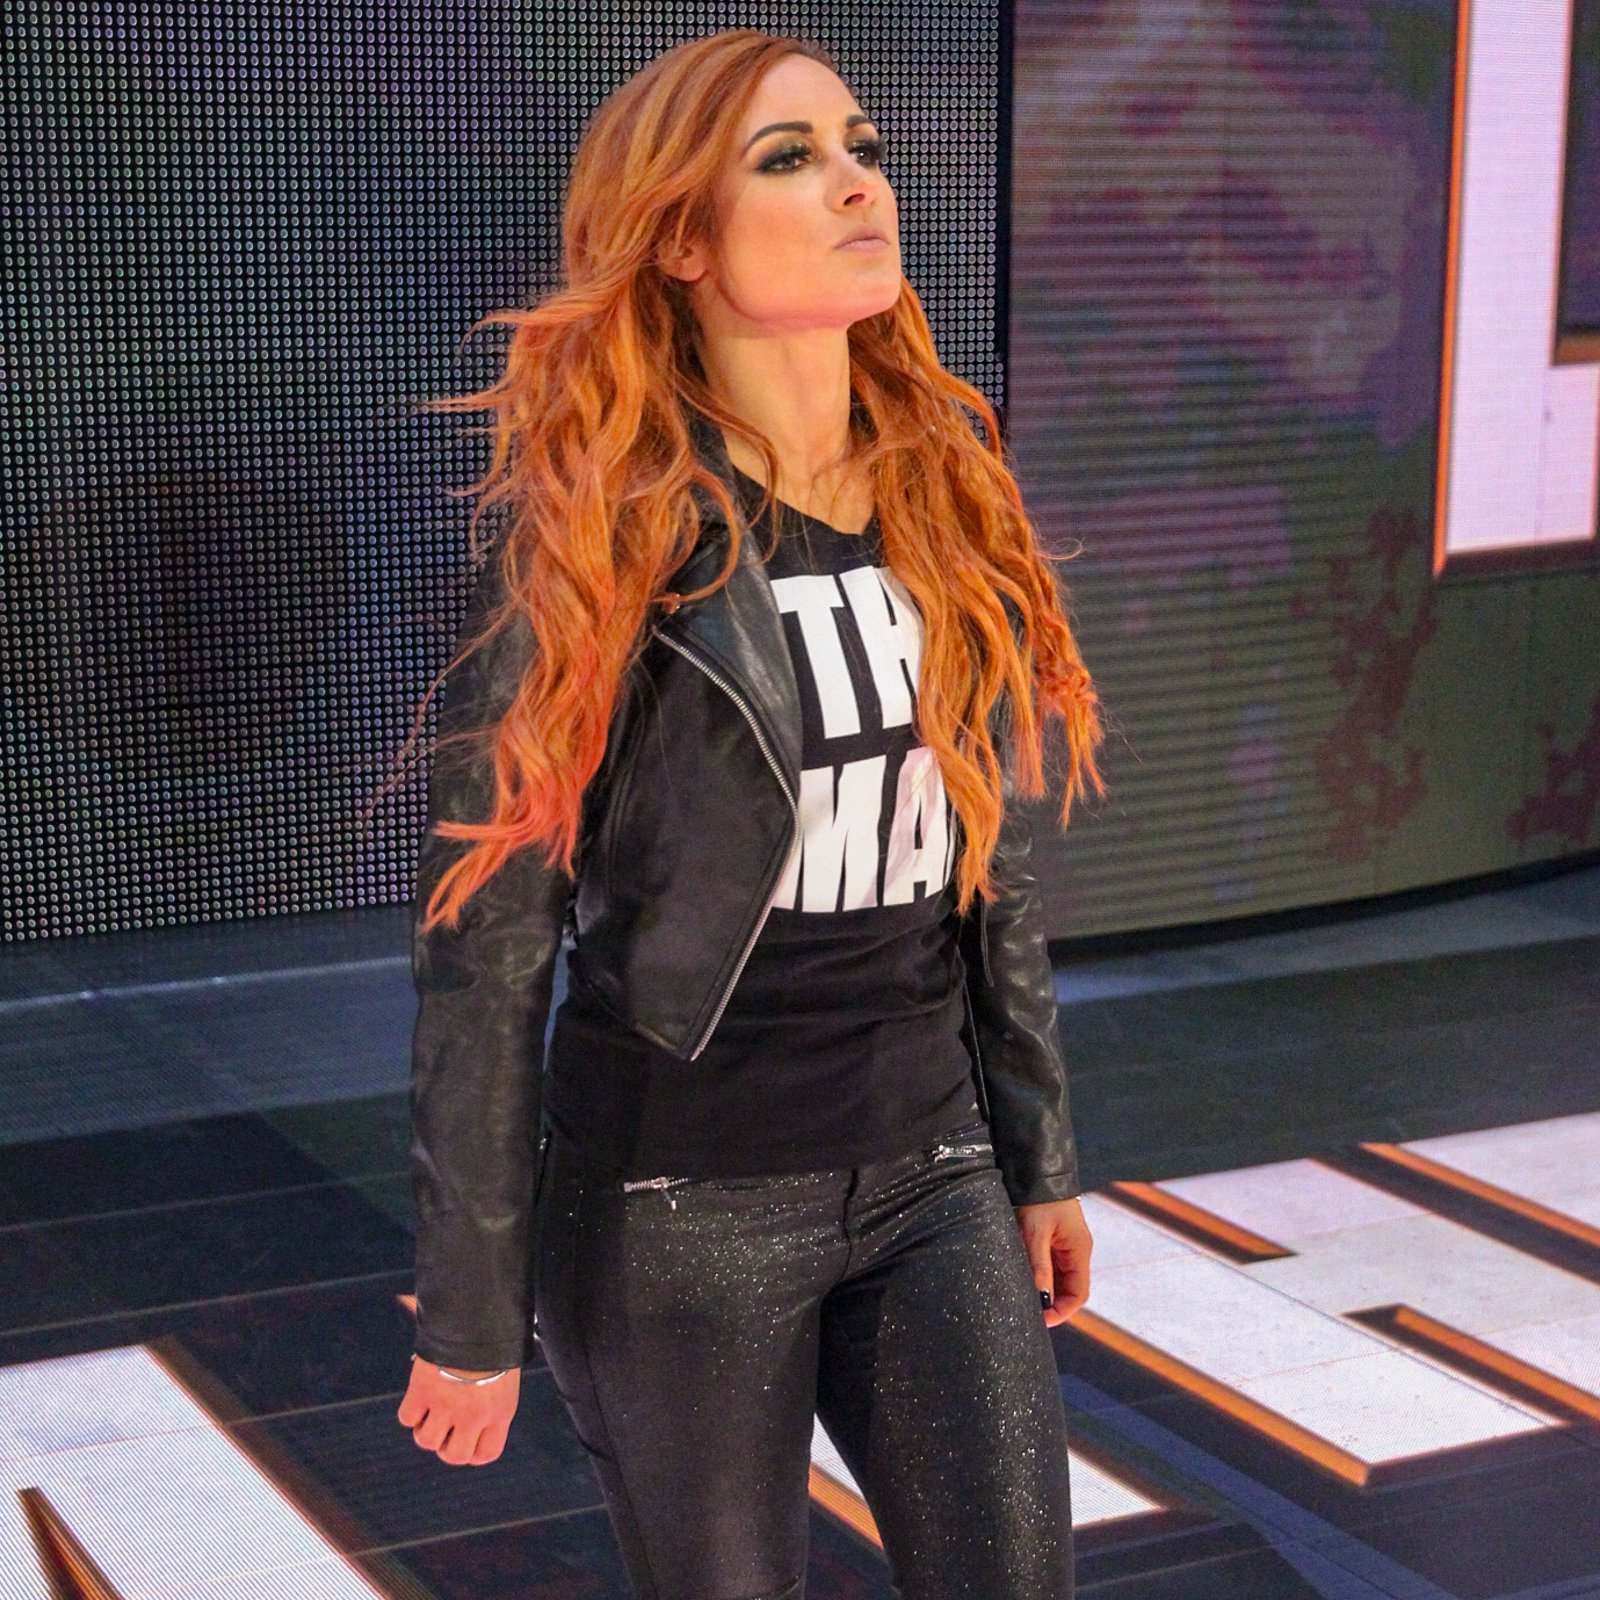 Finally, SmackDown Women's Champion Becky Lynch is all business as she joins her two challengers in the ring.